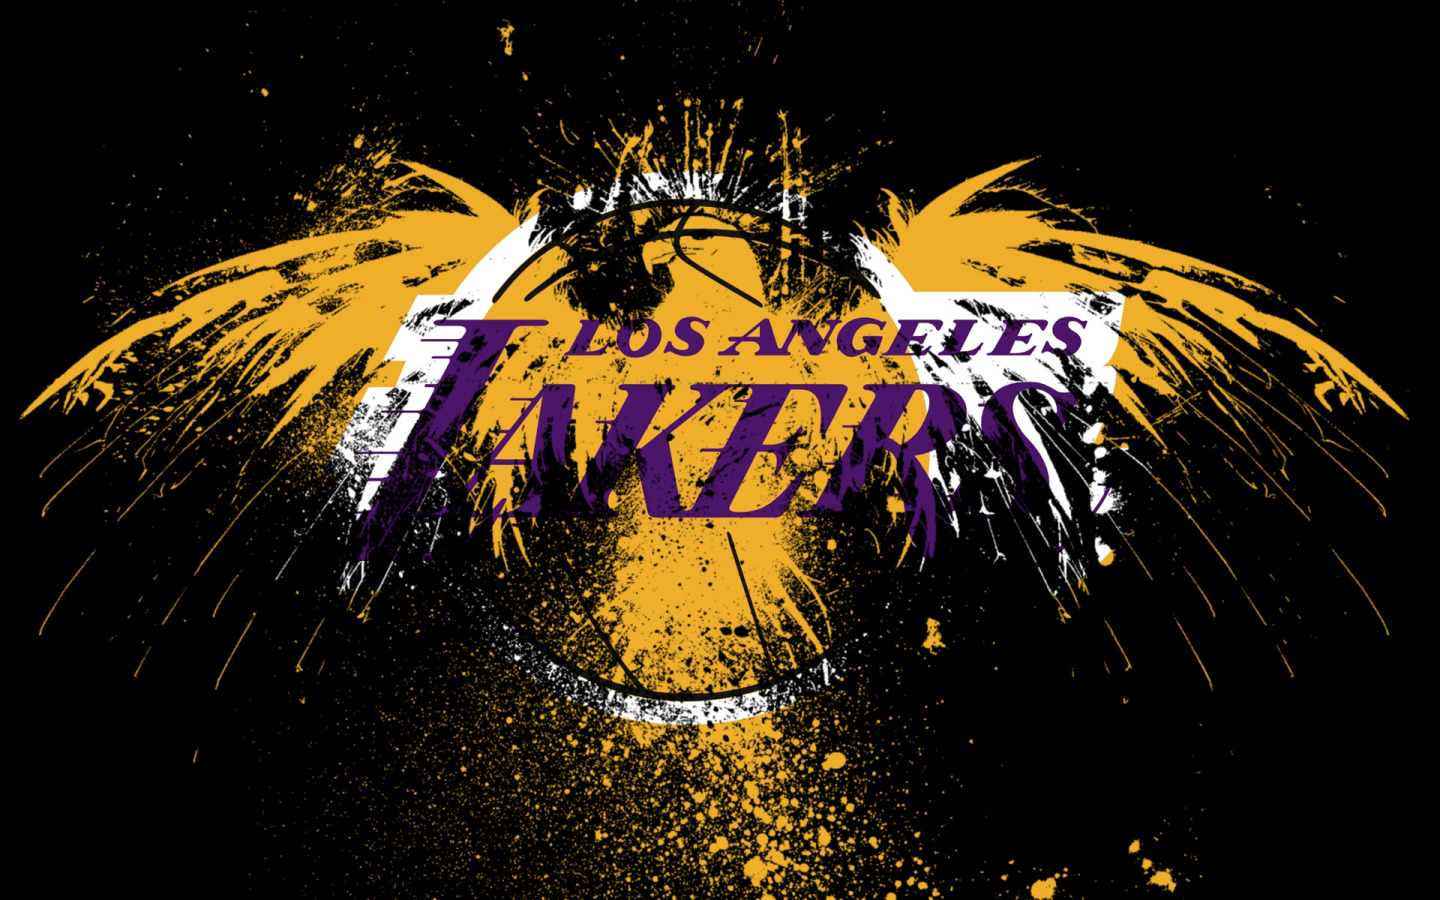 Los Angeles Lakers images Los Angeles Lakers HD wallpaper and background photos